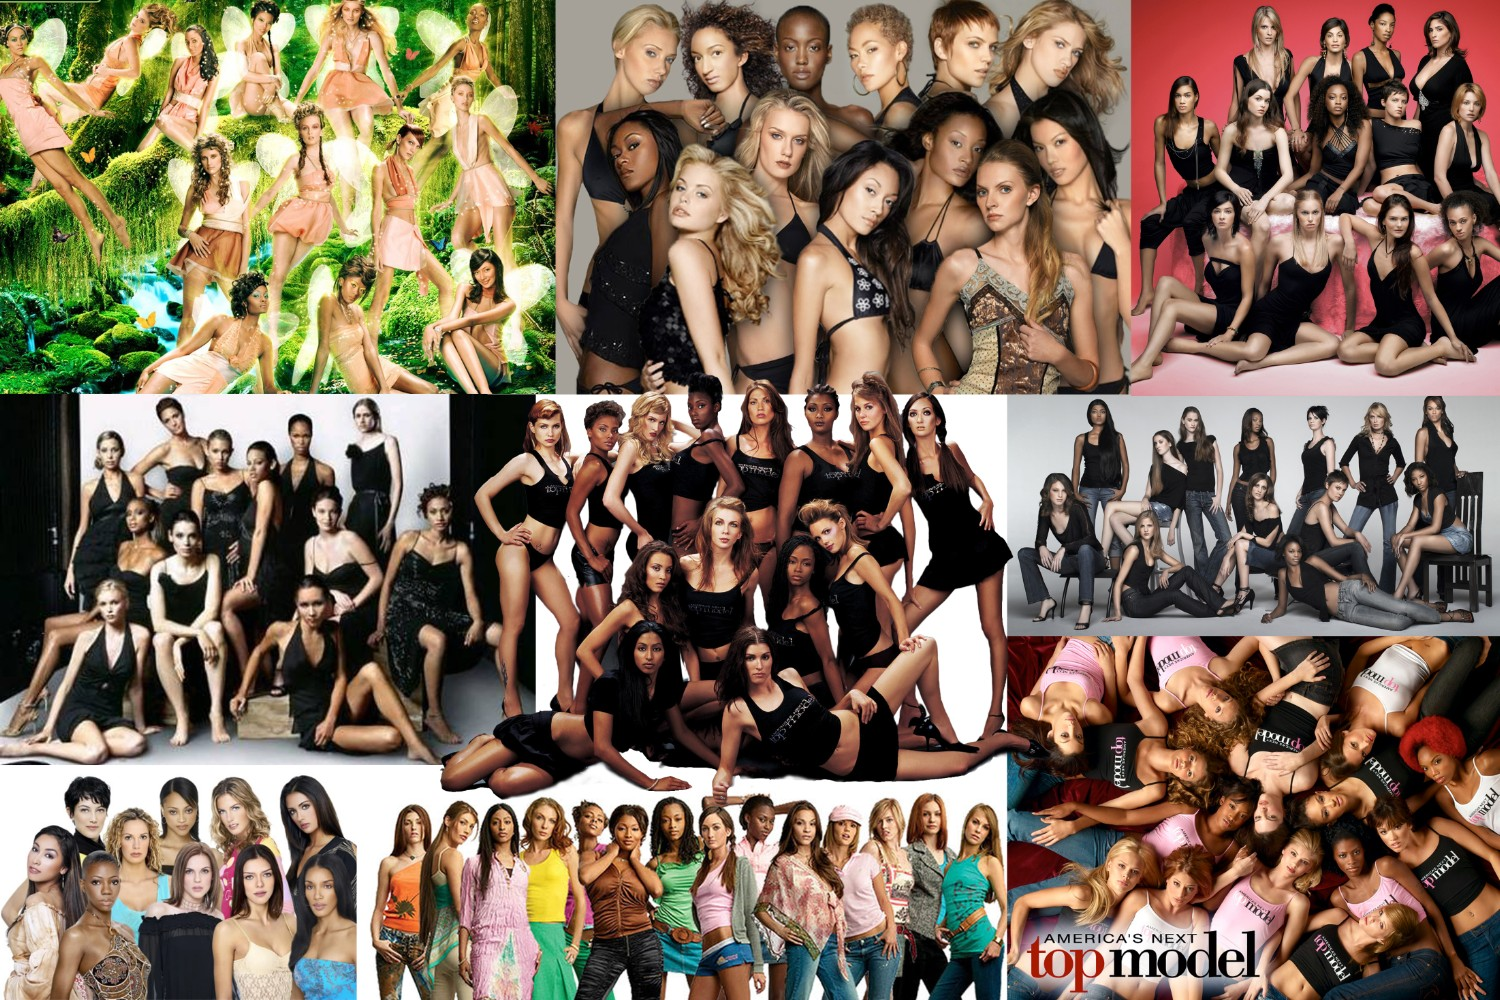 Memory Lane: ANTM is Dead, Long Live The New ANTM